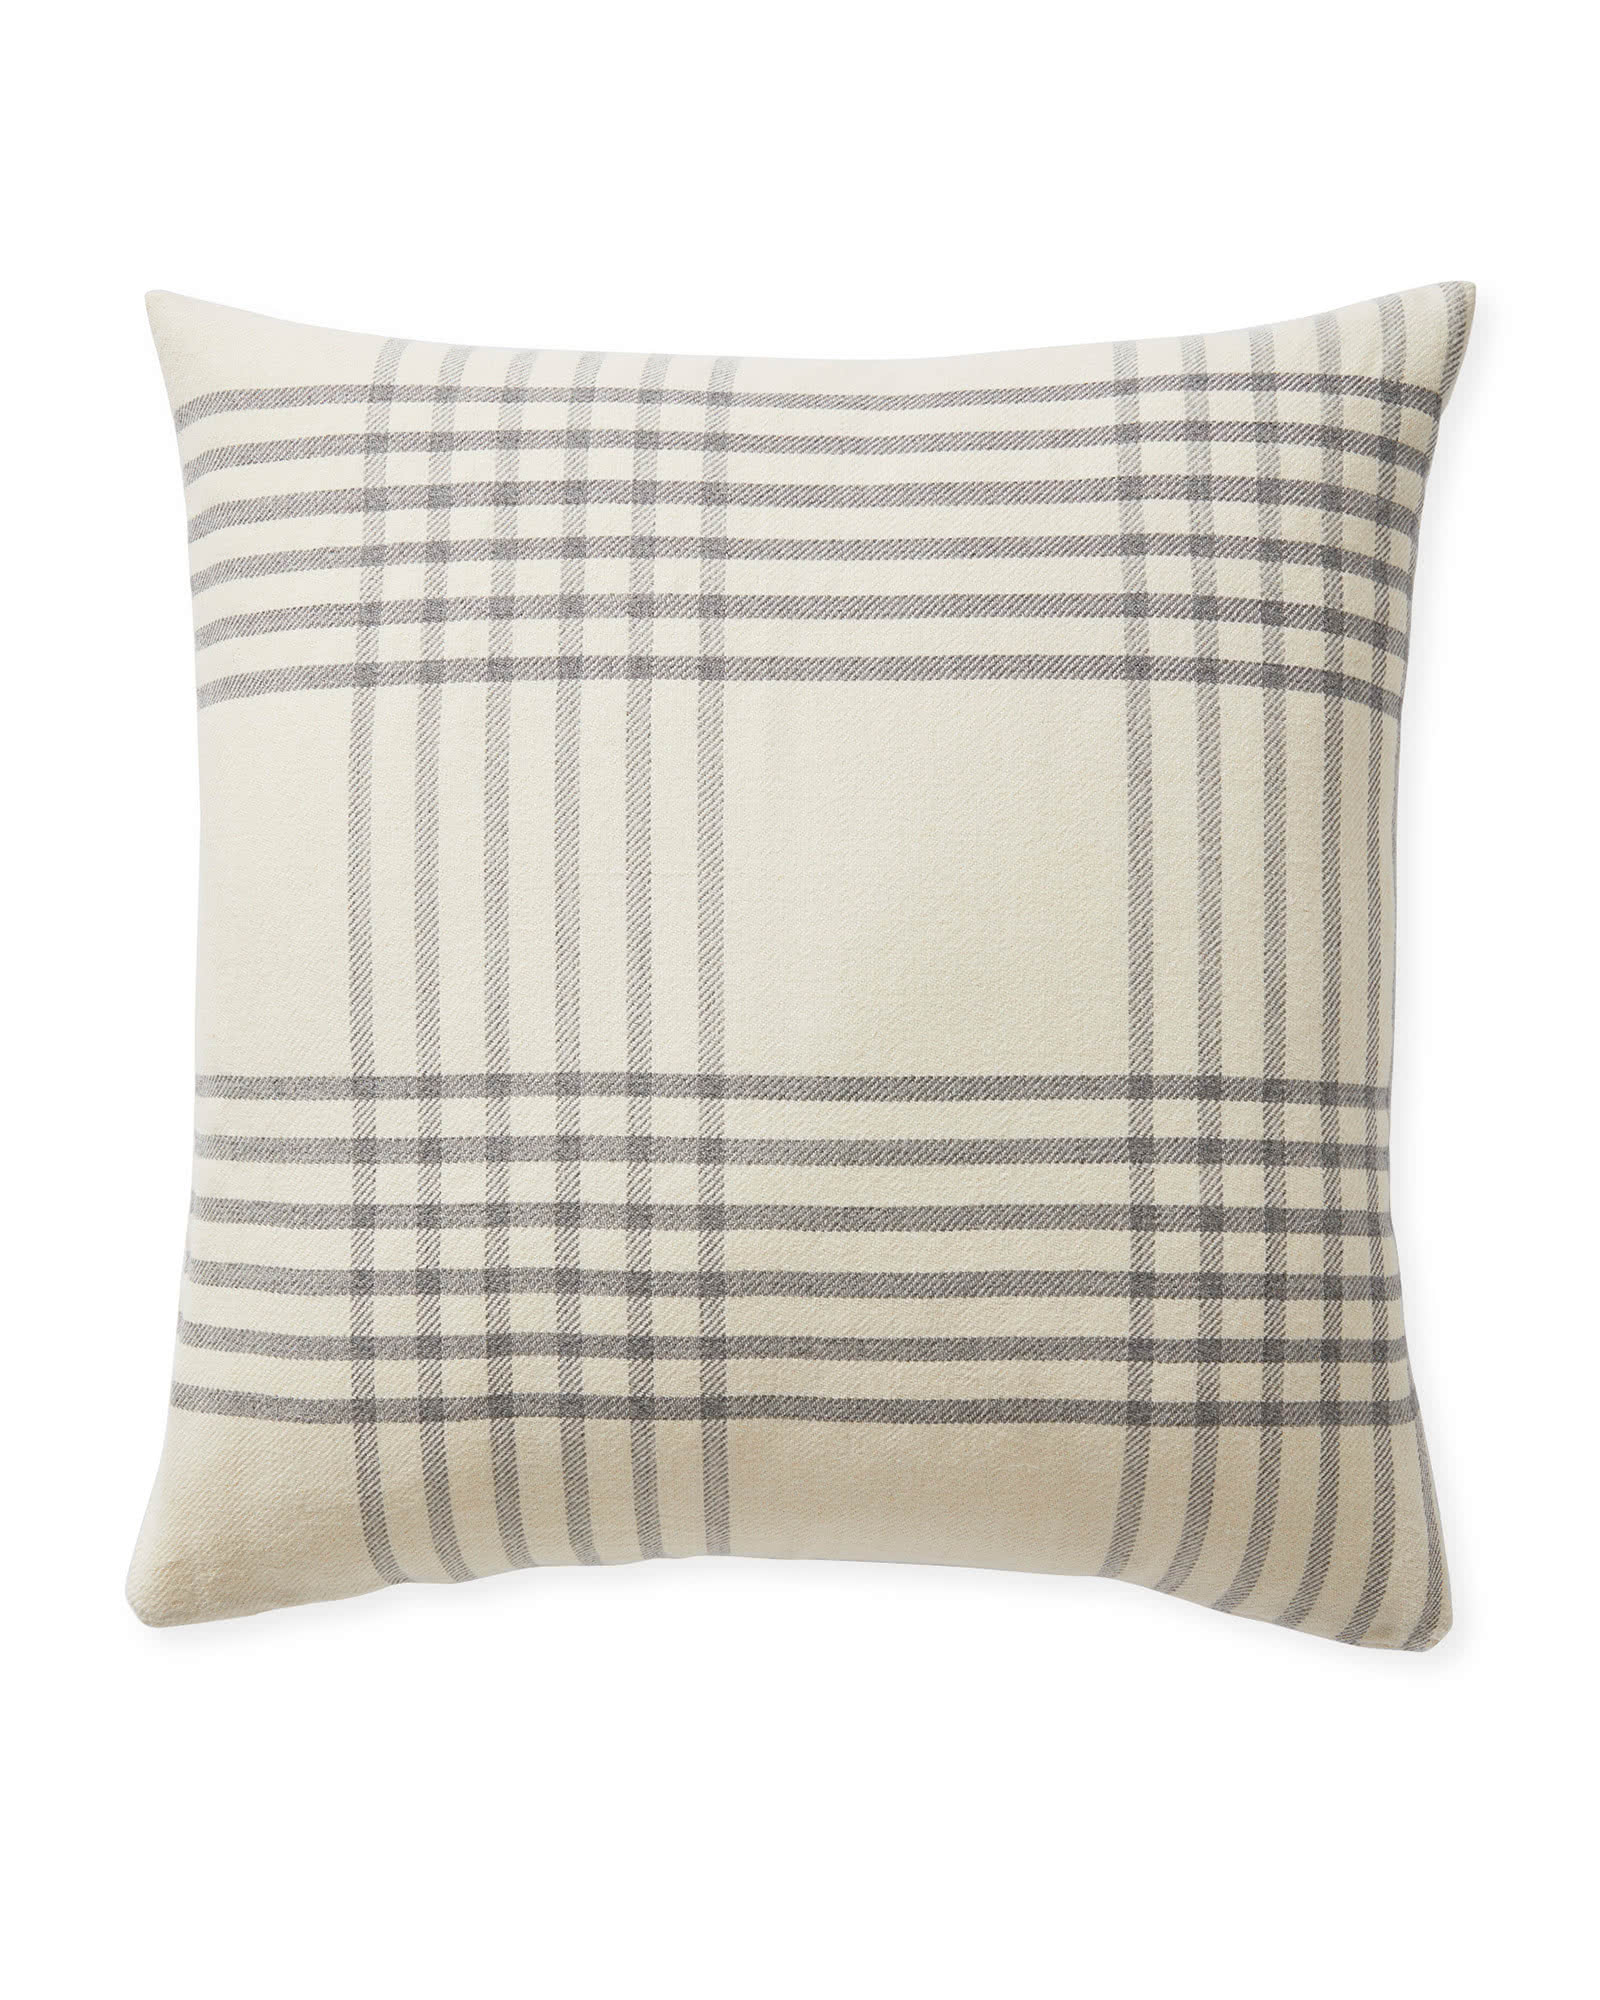 Blakely Plaid Pillow Cover, Ivory/Grey